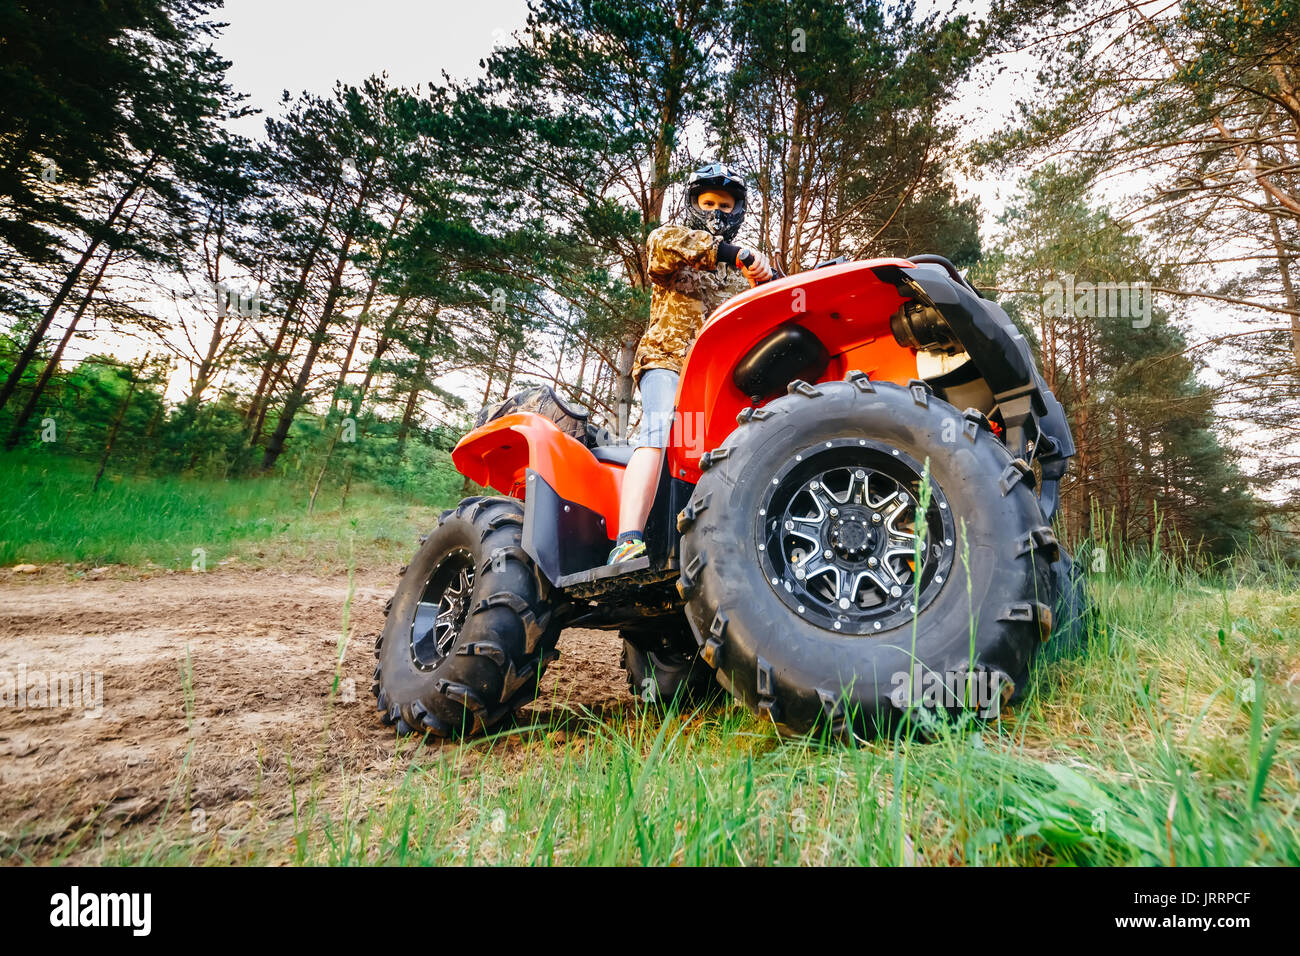 Man on the ATV Quad Bike running in mud track - Stock Image